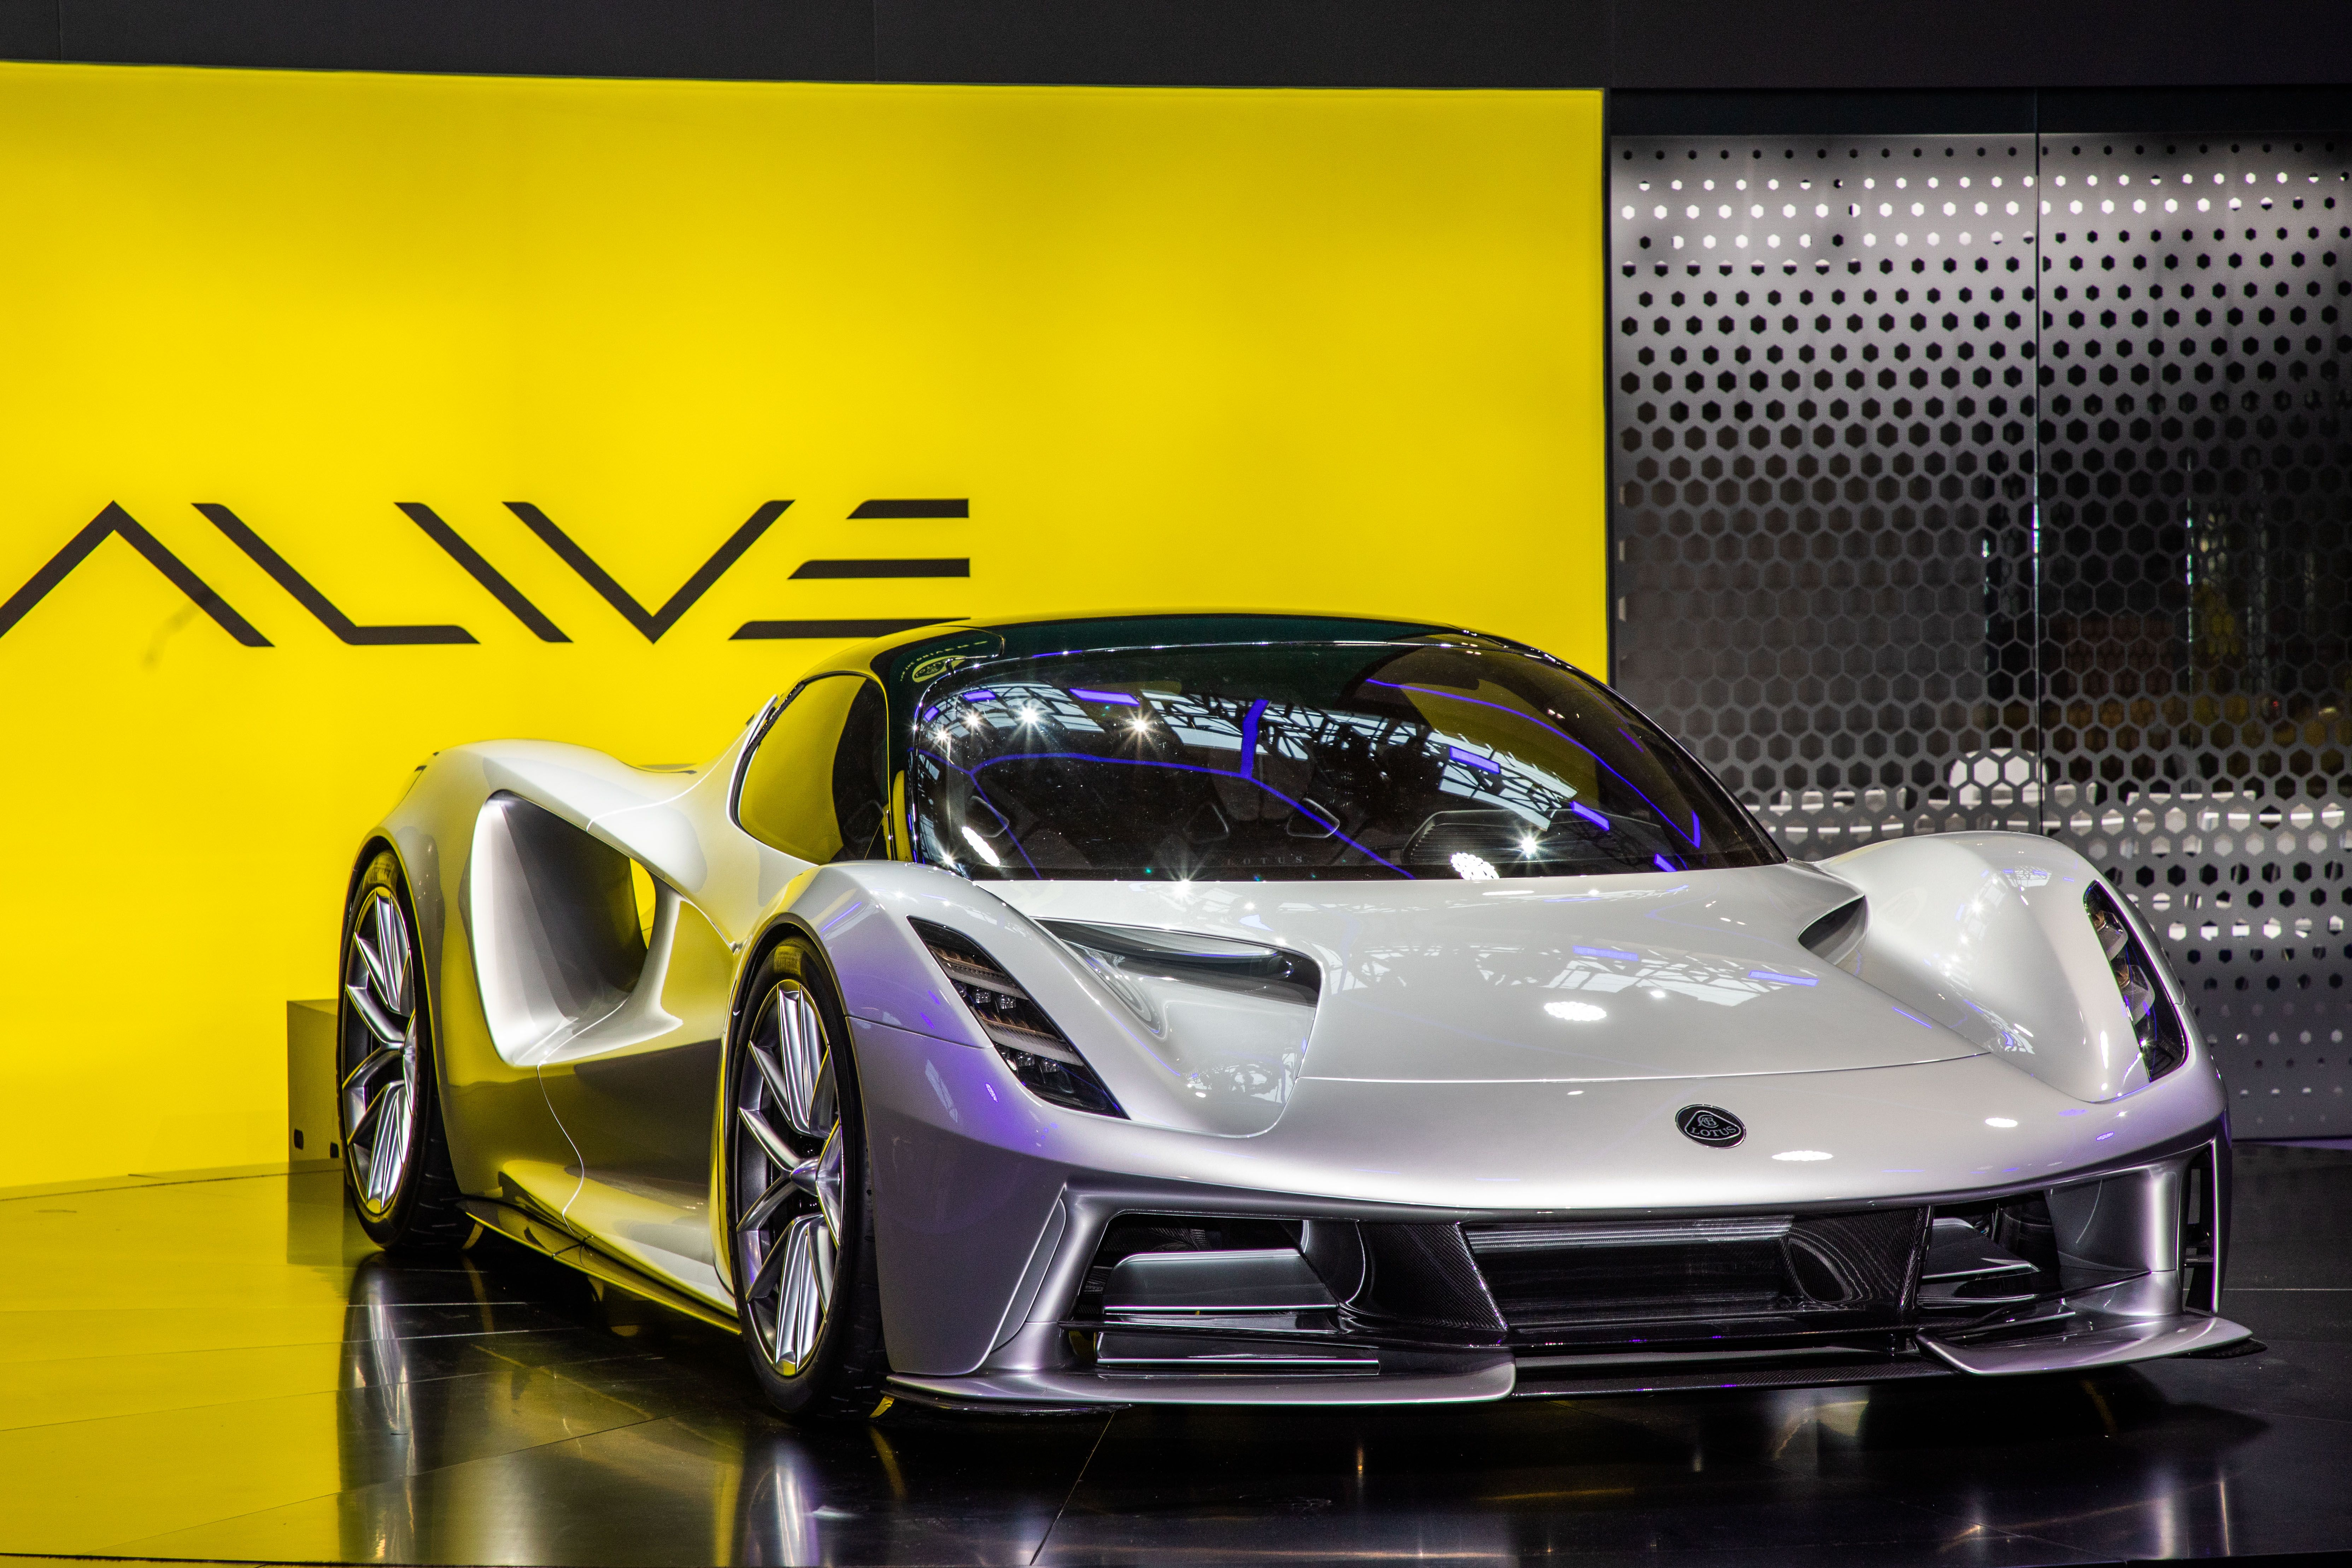 The Million Lotus Evija Is Already Sold Out For 2020 Major Testing Underway Top Speed In 2020 Super Cars Lotus New Lotus